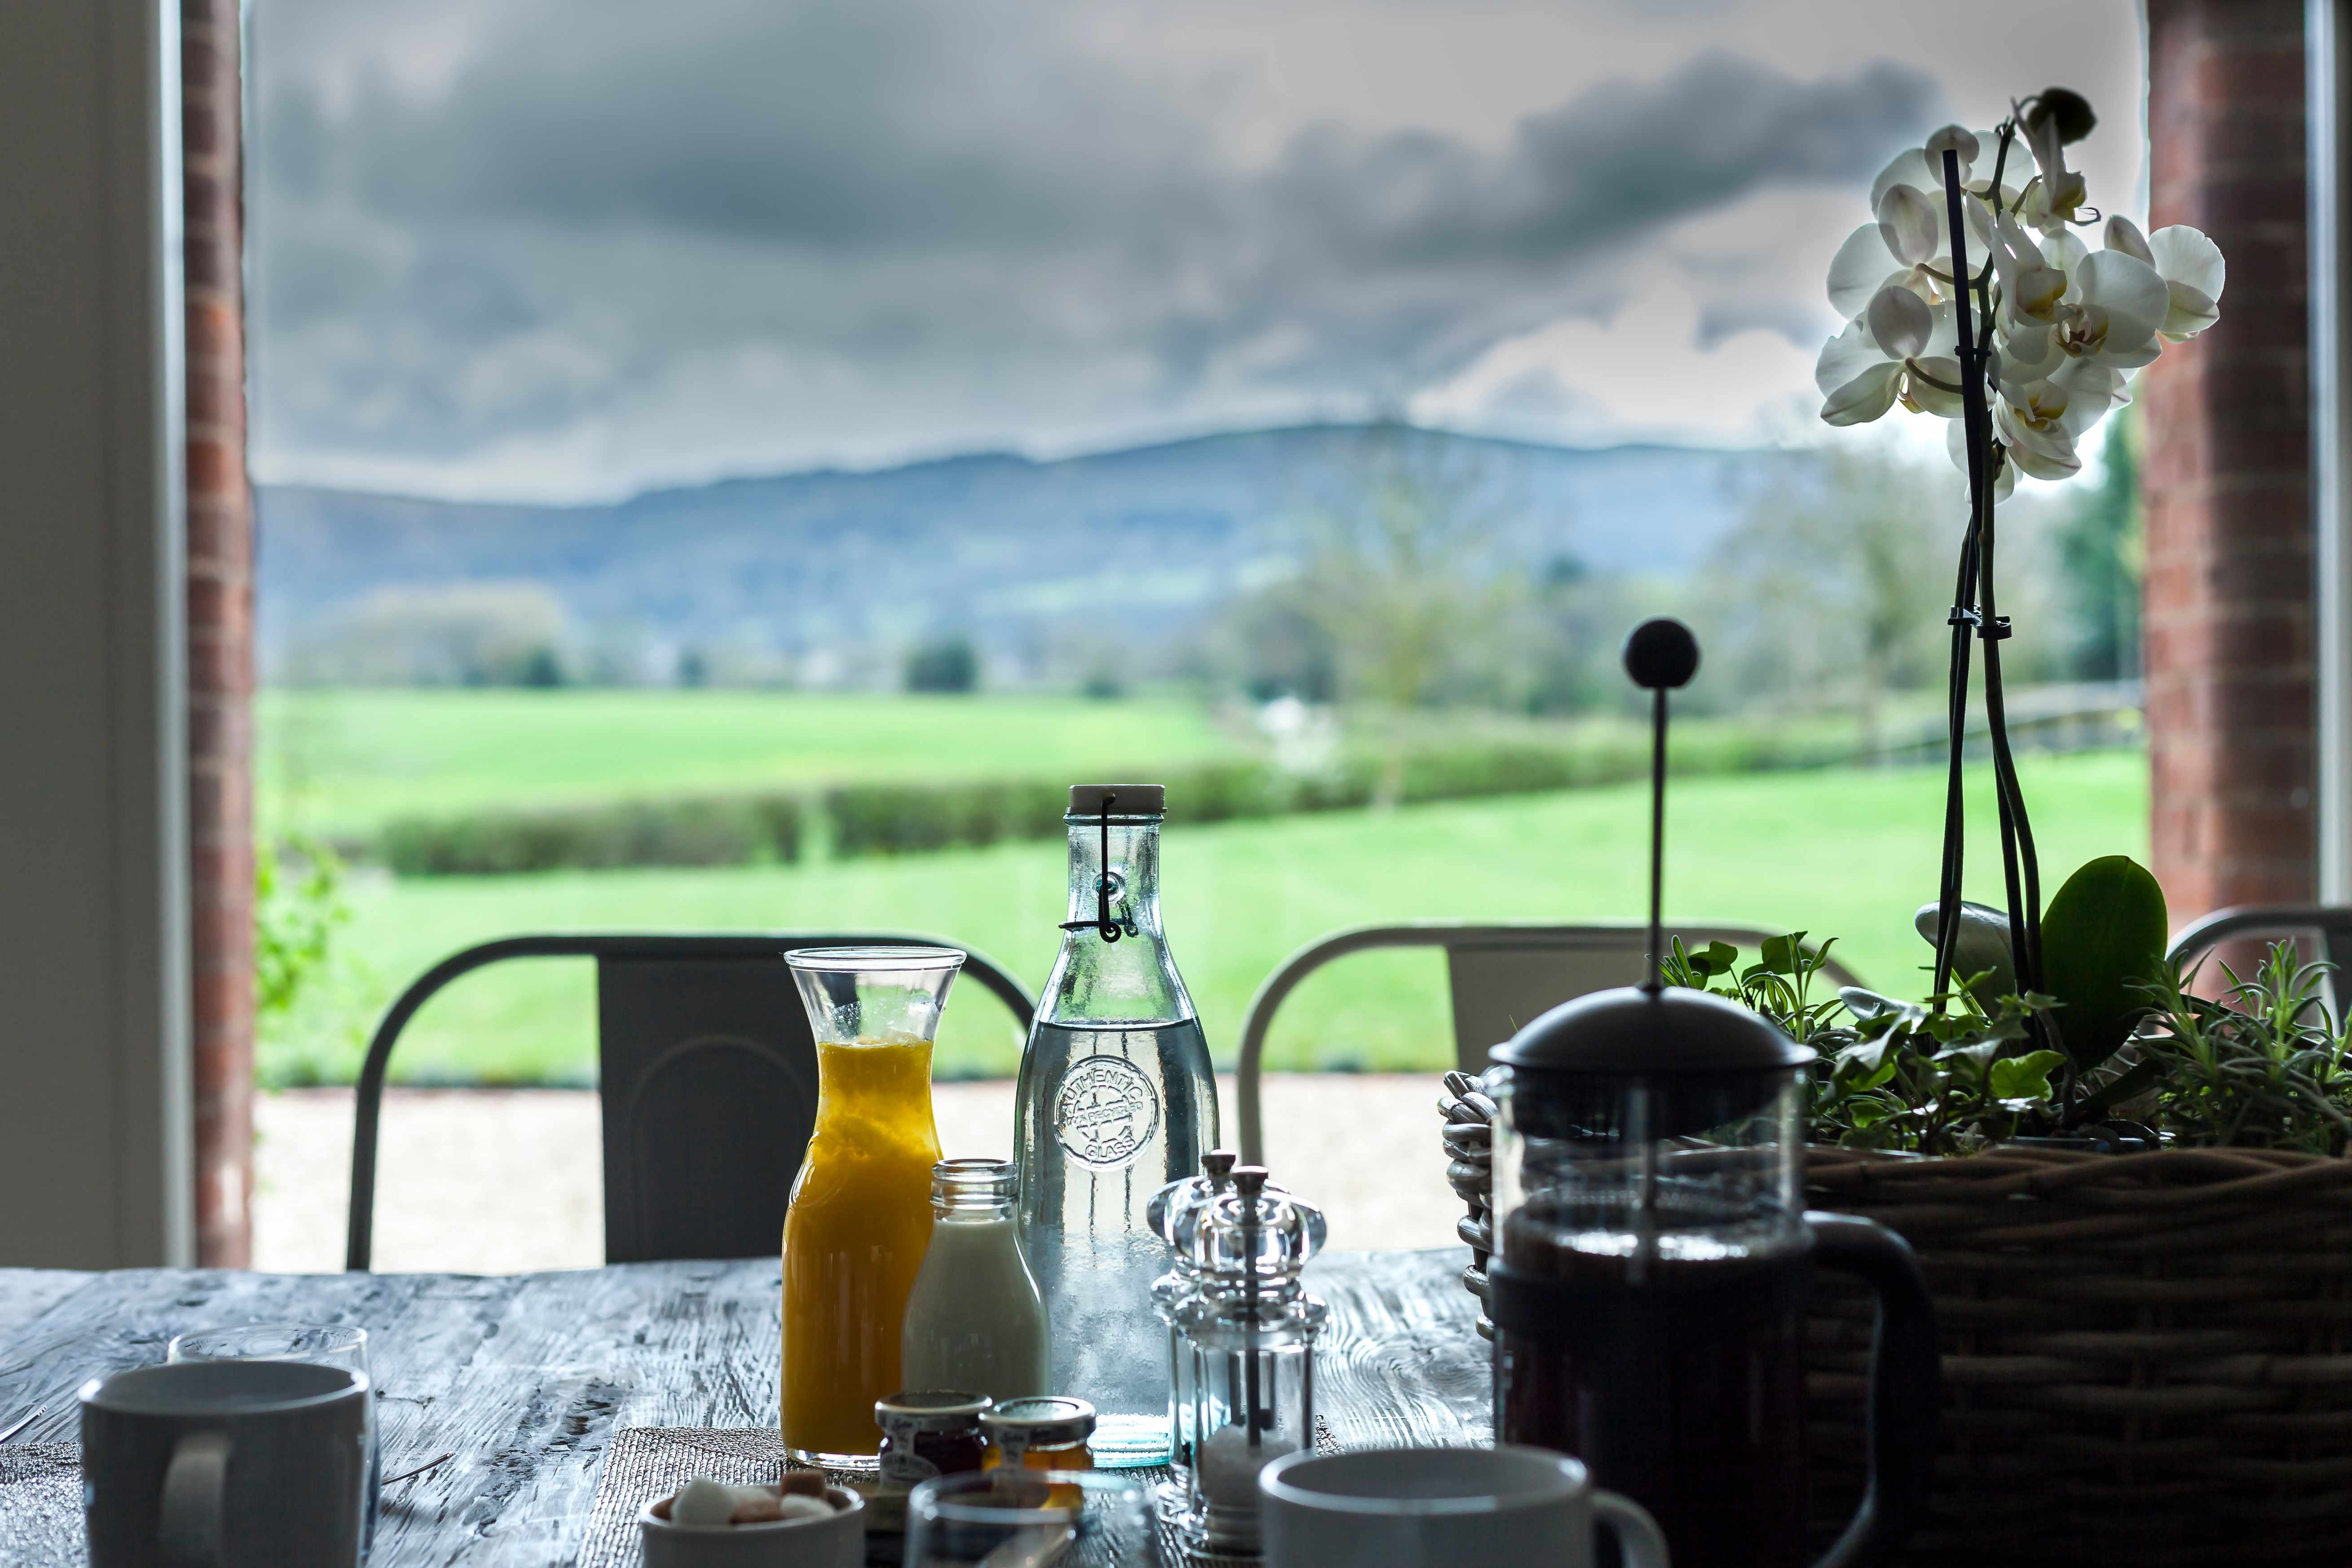 The Bull Shed, Herefordshire: Bed and Breakfast Review